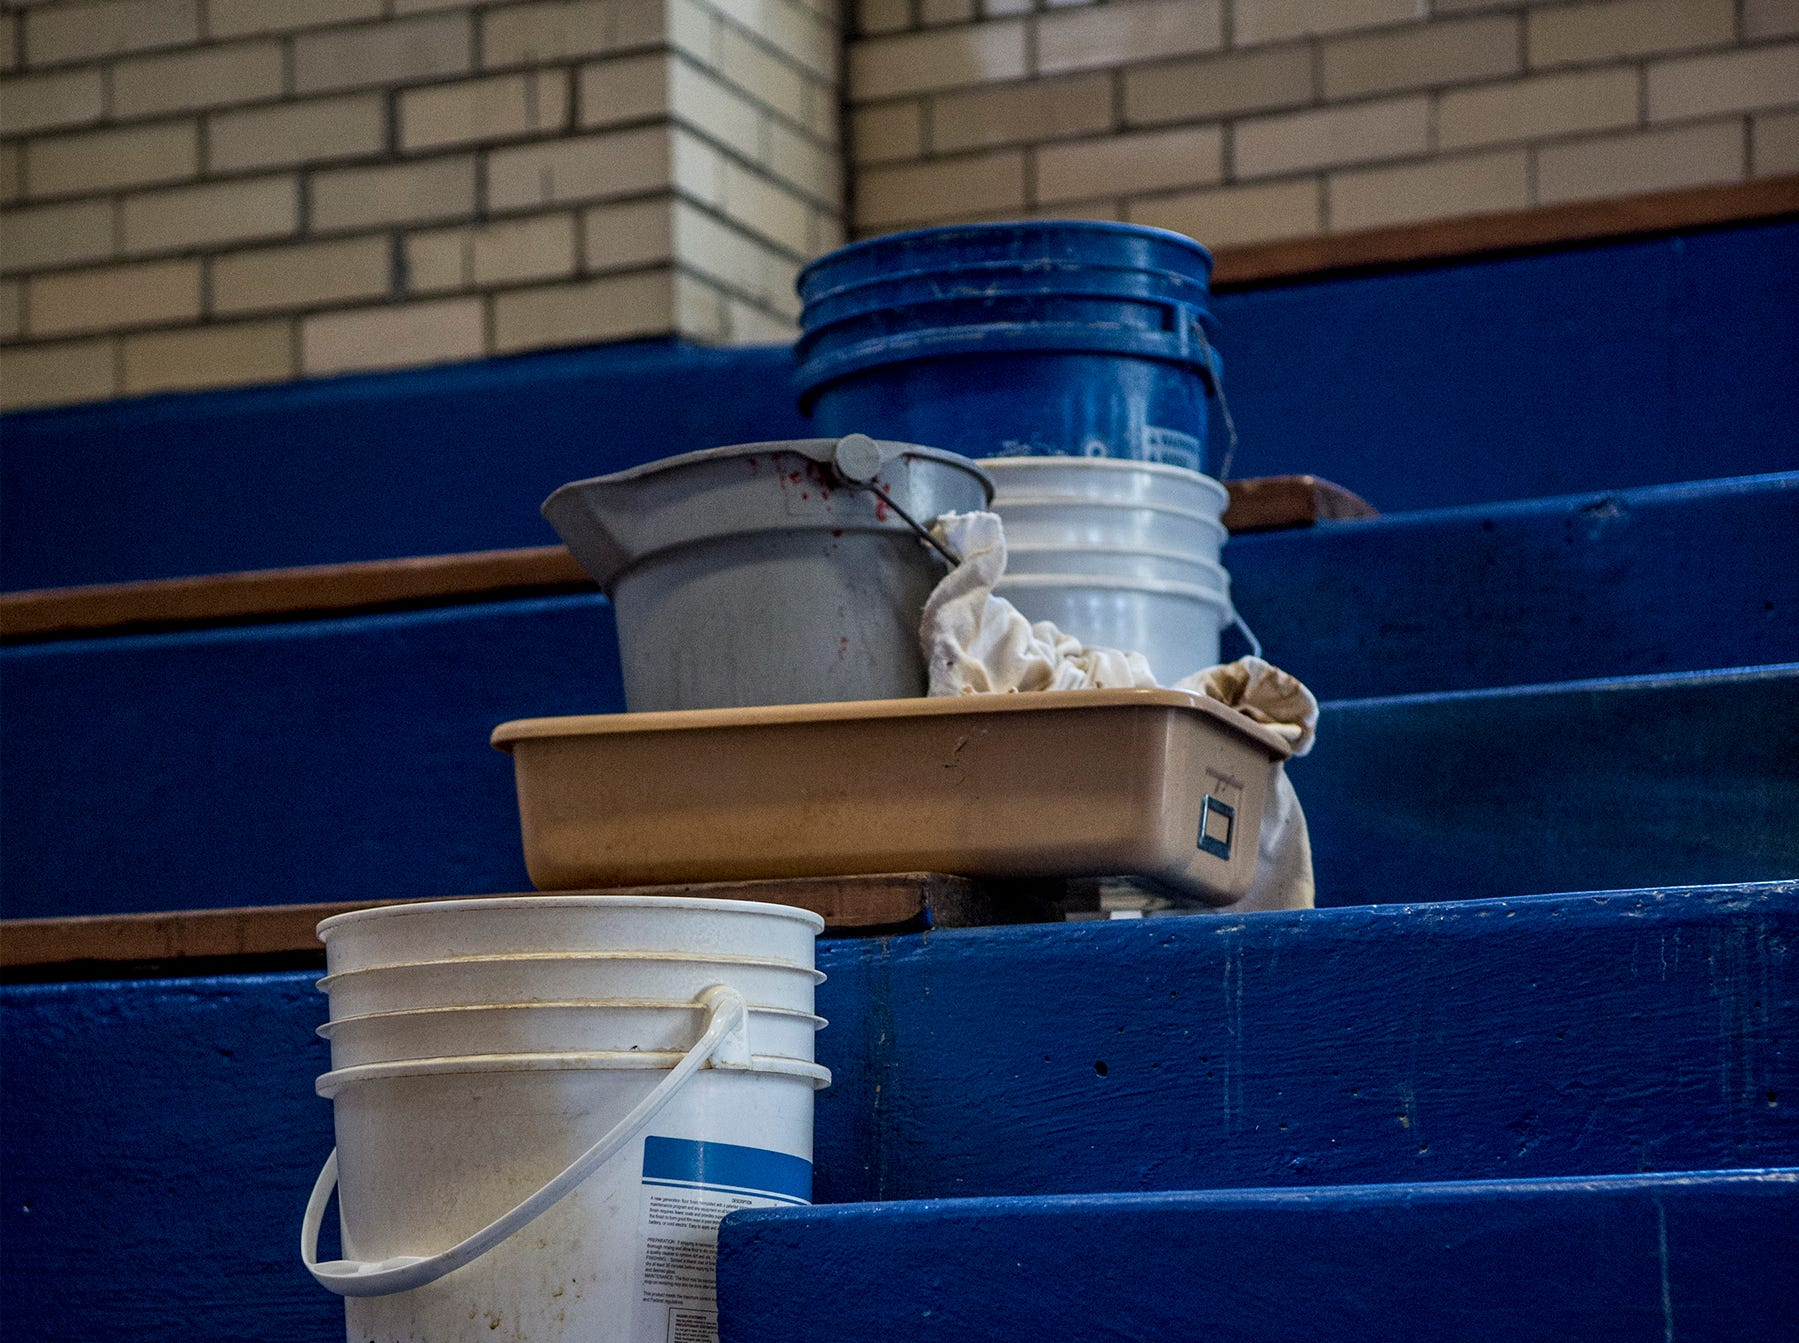 Lakewood Schools are looking to pass a levy this May to help their elementary schools. Buckets are laid out all over Hebron Elementary, like these in the gymnasium, when it rains to catch water dripping in. The children are forced to play around the buckets.